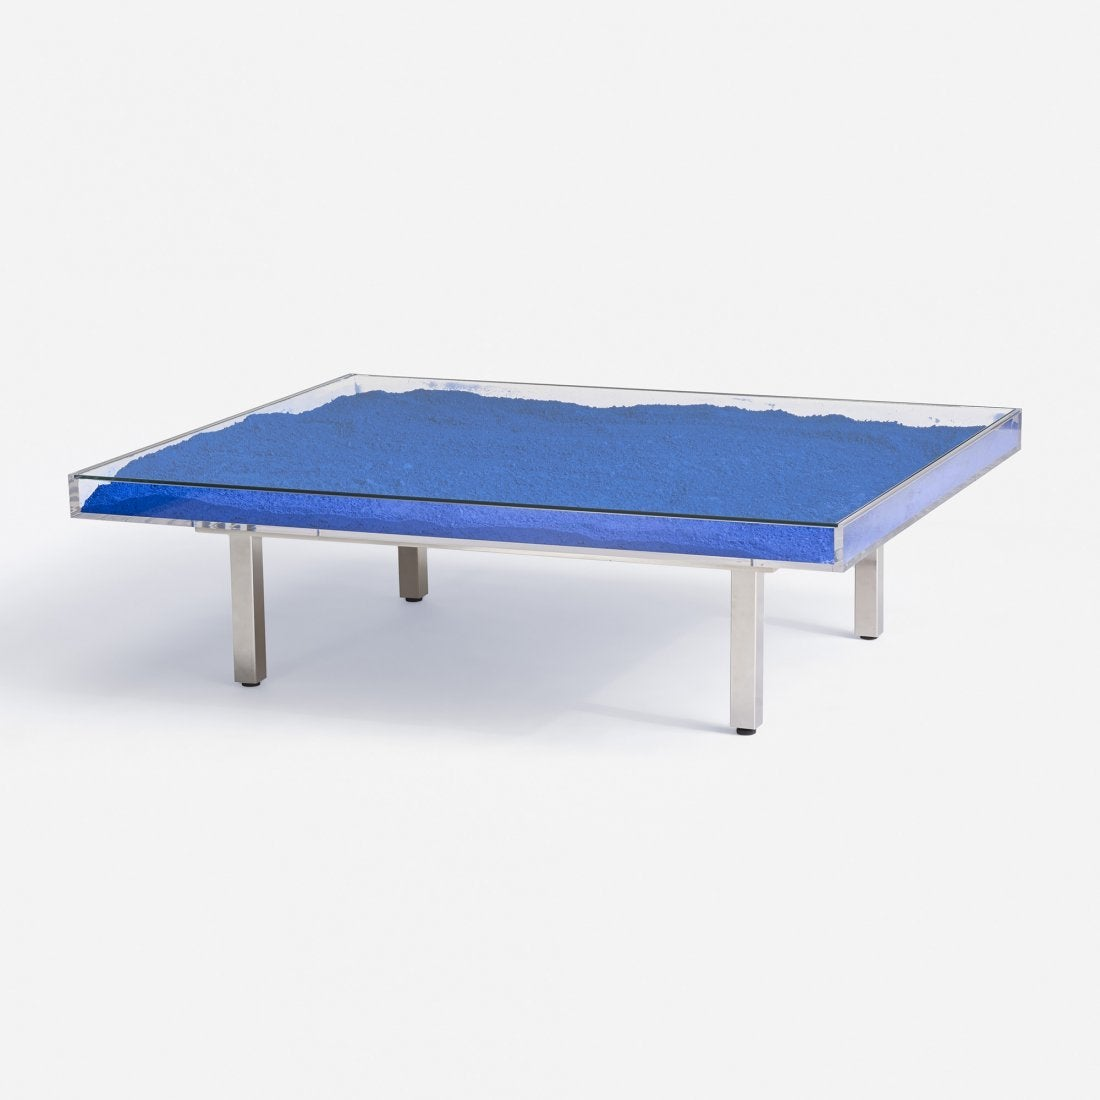 Klein Marble Coffee Table: Klein Blue™ Table By Yves Klein For Sale At 1stdibs